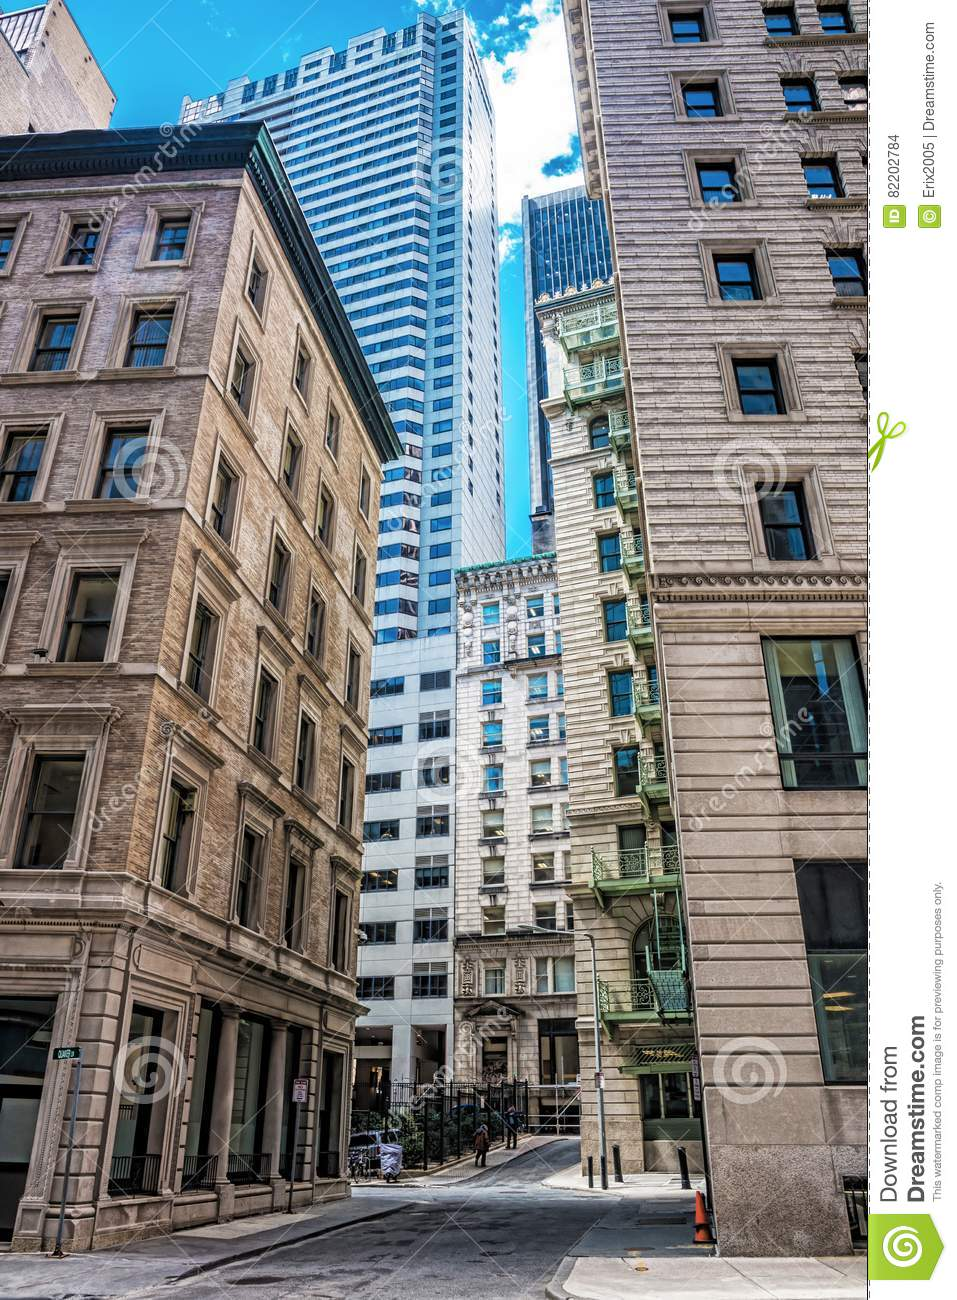 Download Skyscrapers In Congress Street In Financial District Of Downtown Boston Stock Photo - Image of boston, central: 82202784